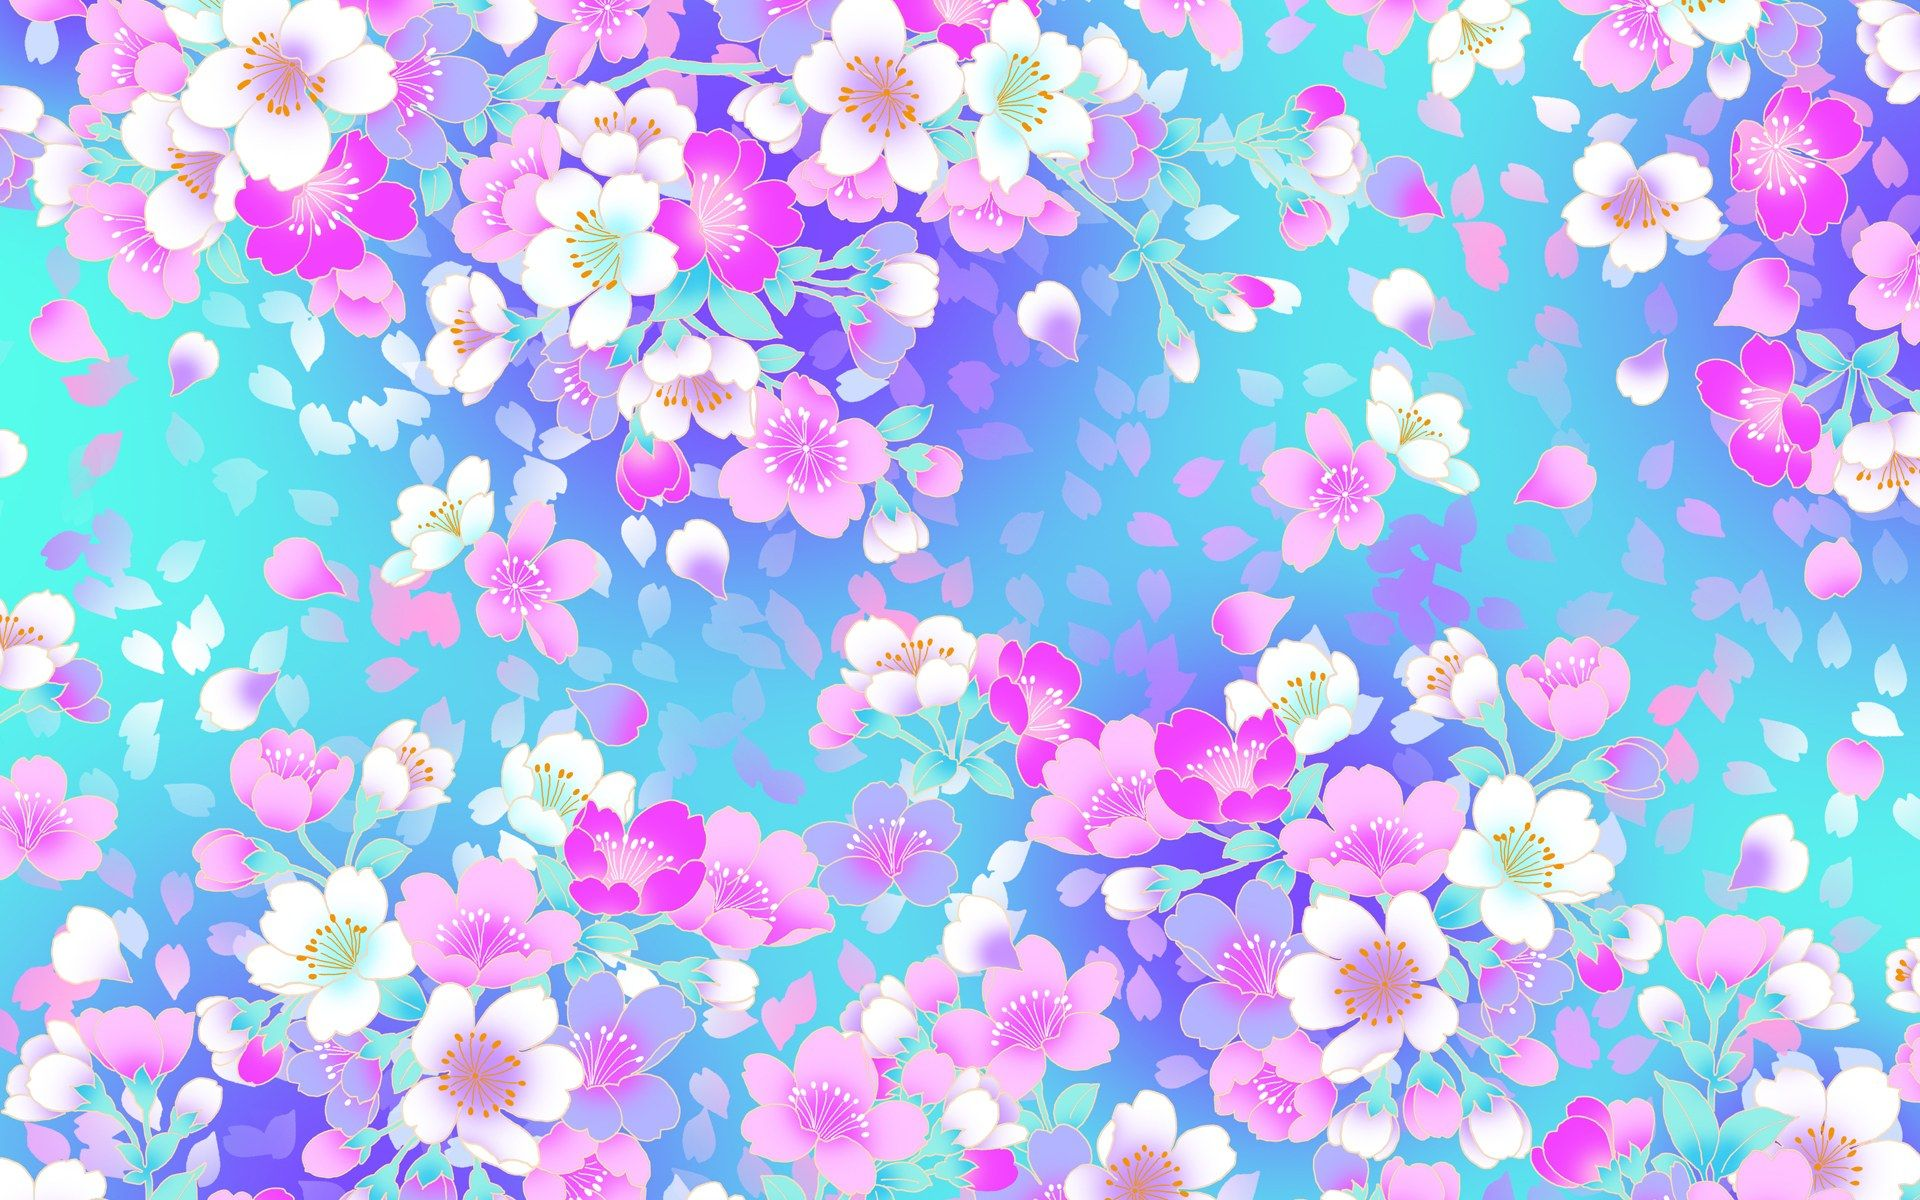 A Coloured Flower Border Art By Sheila Arthurs Description From Pinterest Com I Searched For Flowery Wallpaper Tumblr Backgrounds Floral Pattern Wallpaper